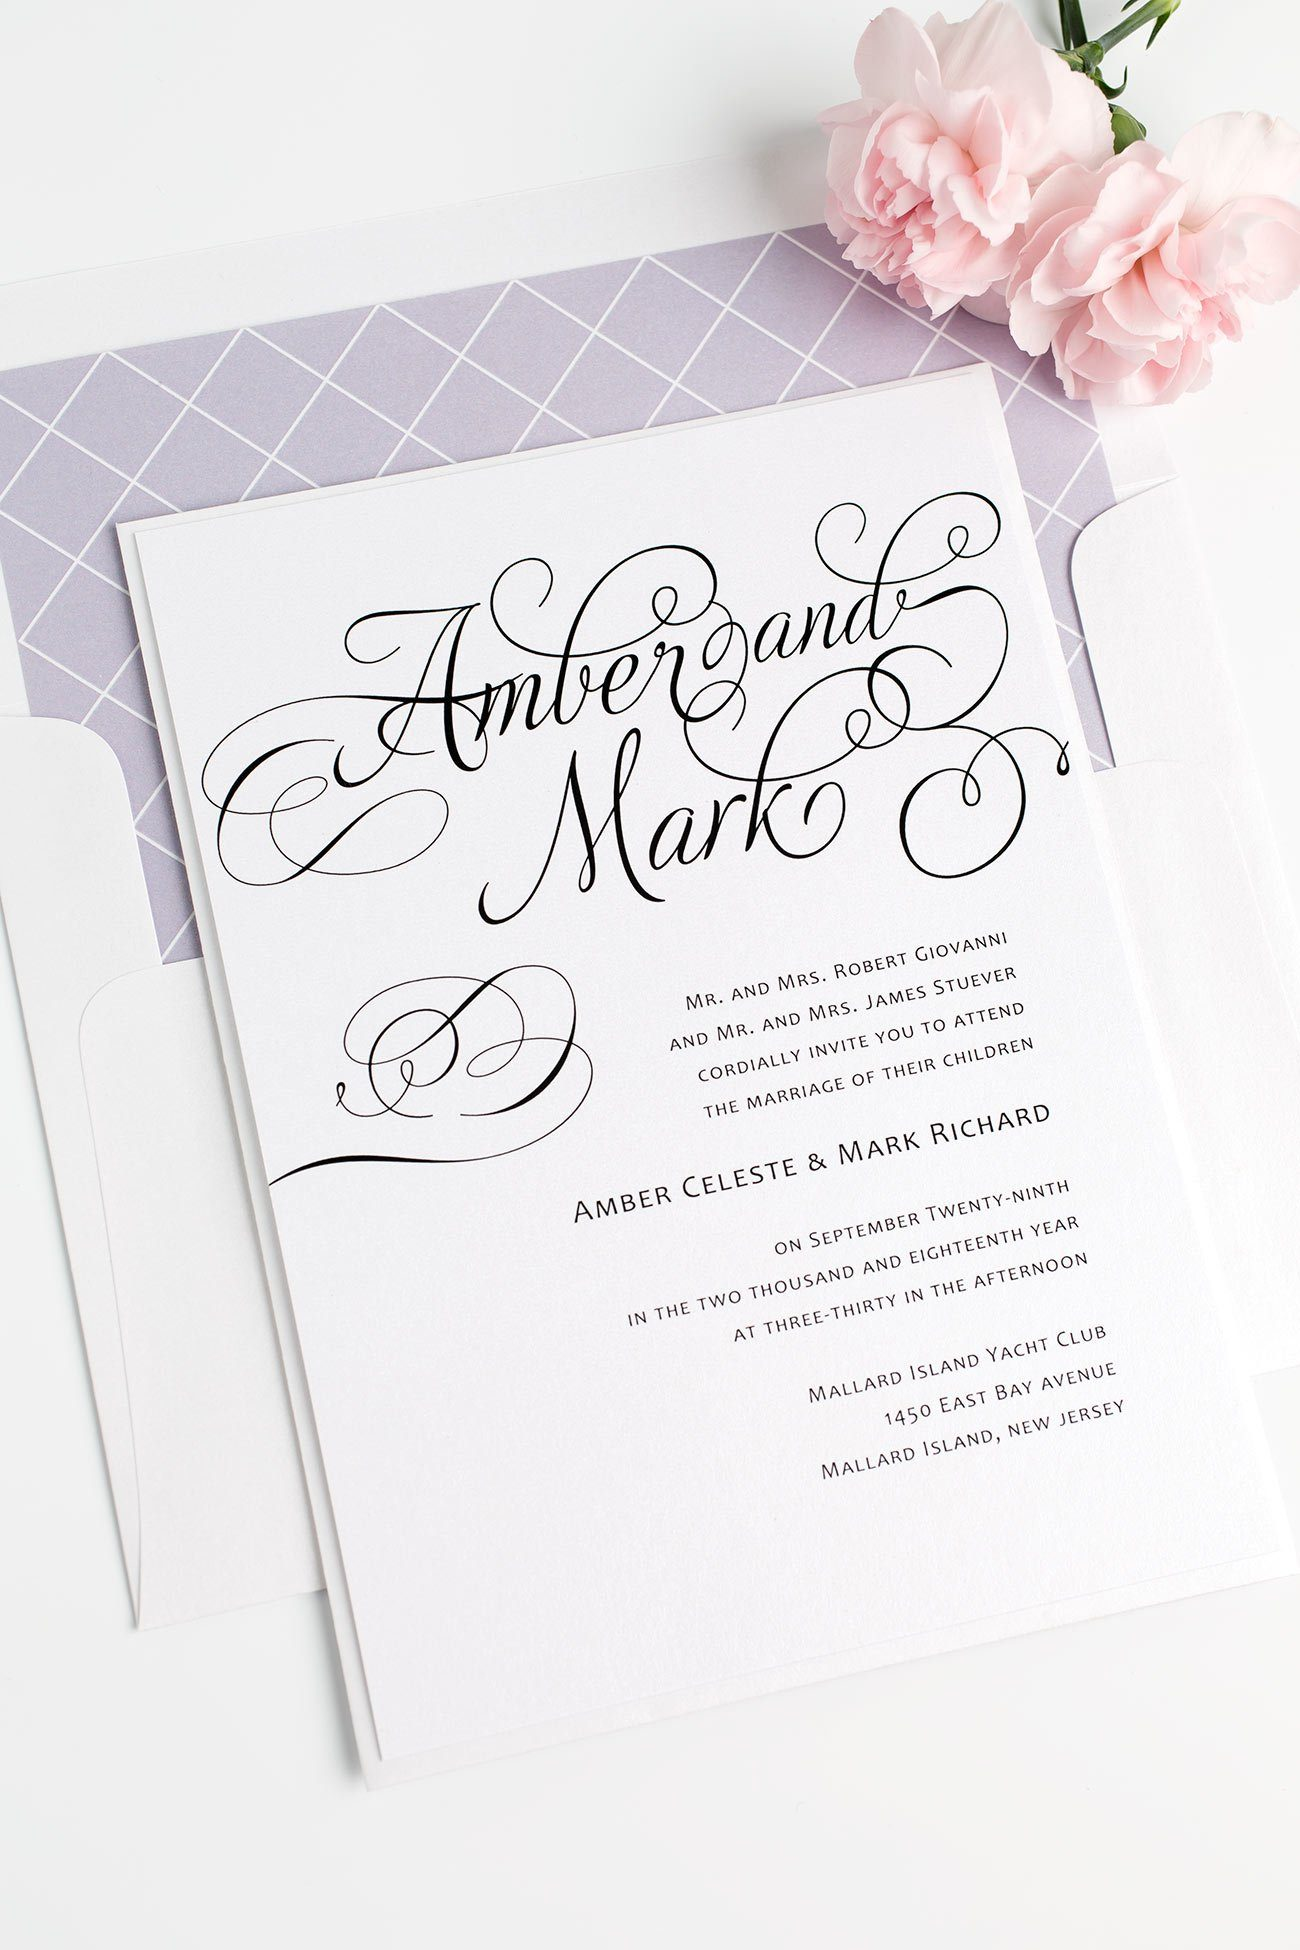 Charming Fairytale Wedding Invitations in Lavender with a Diamond Pattern Envelope Liner